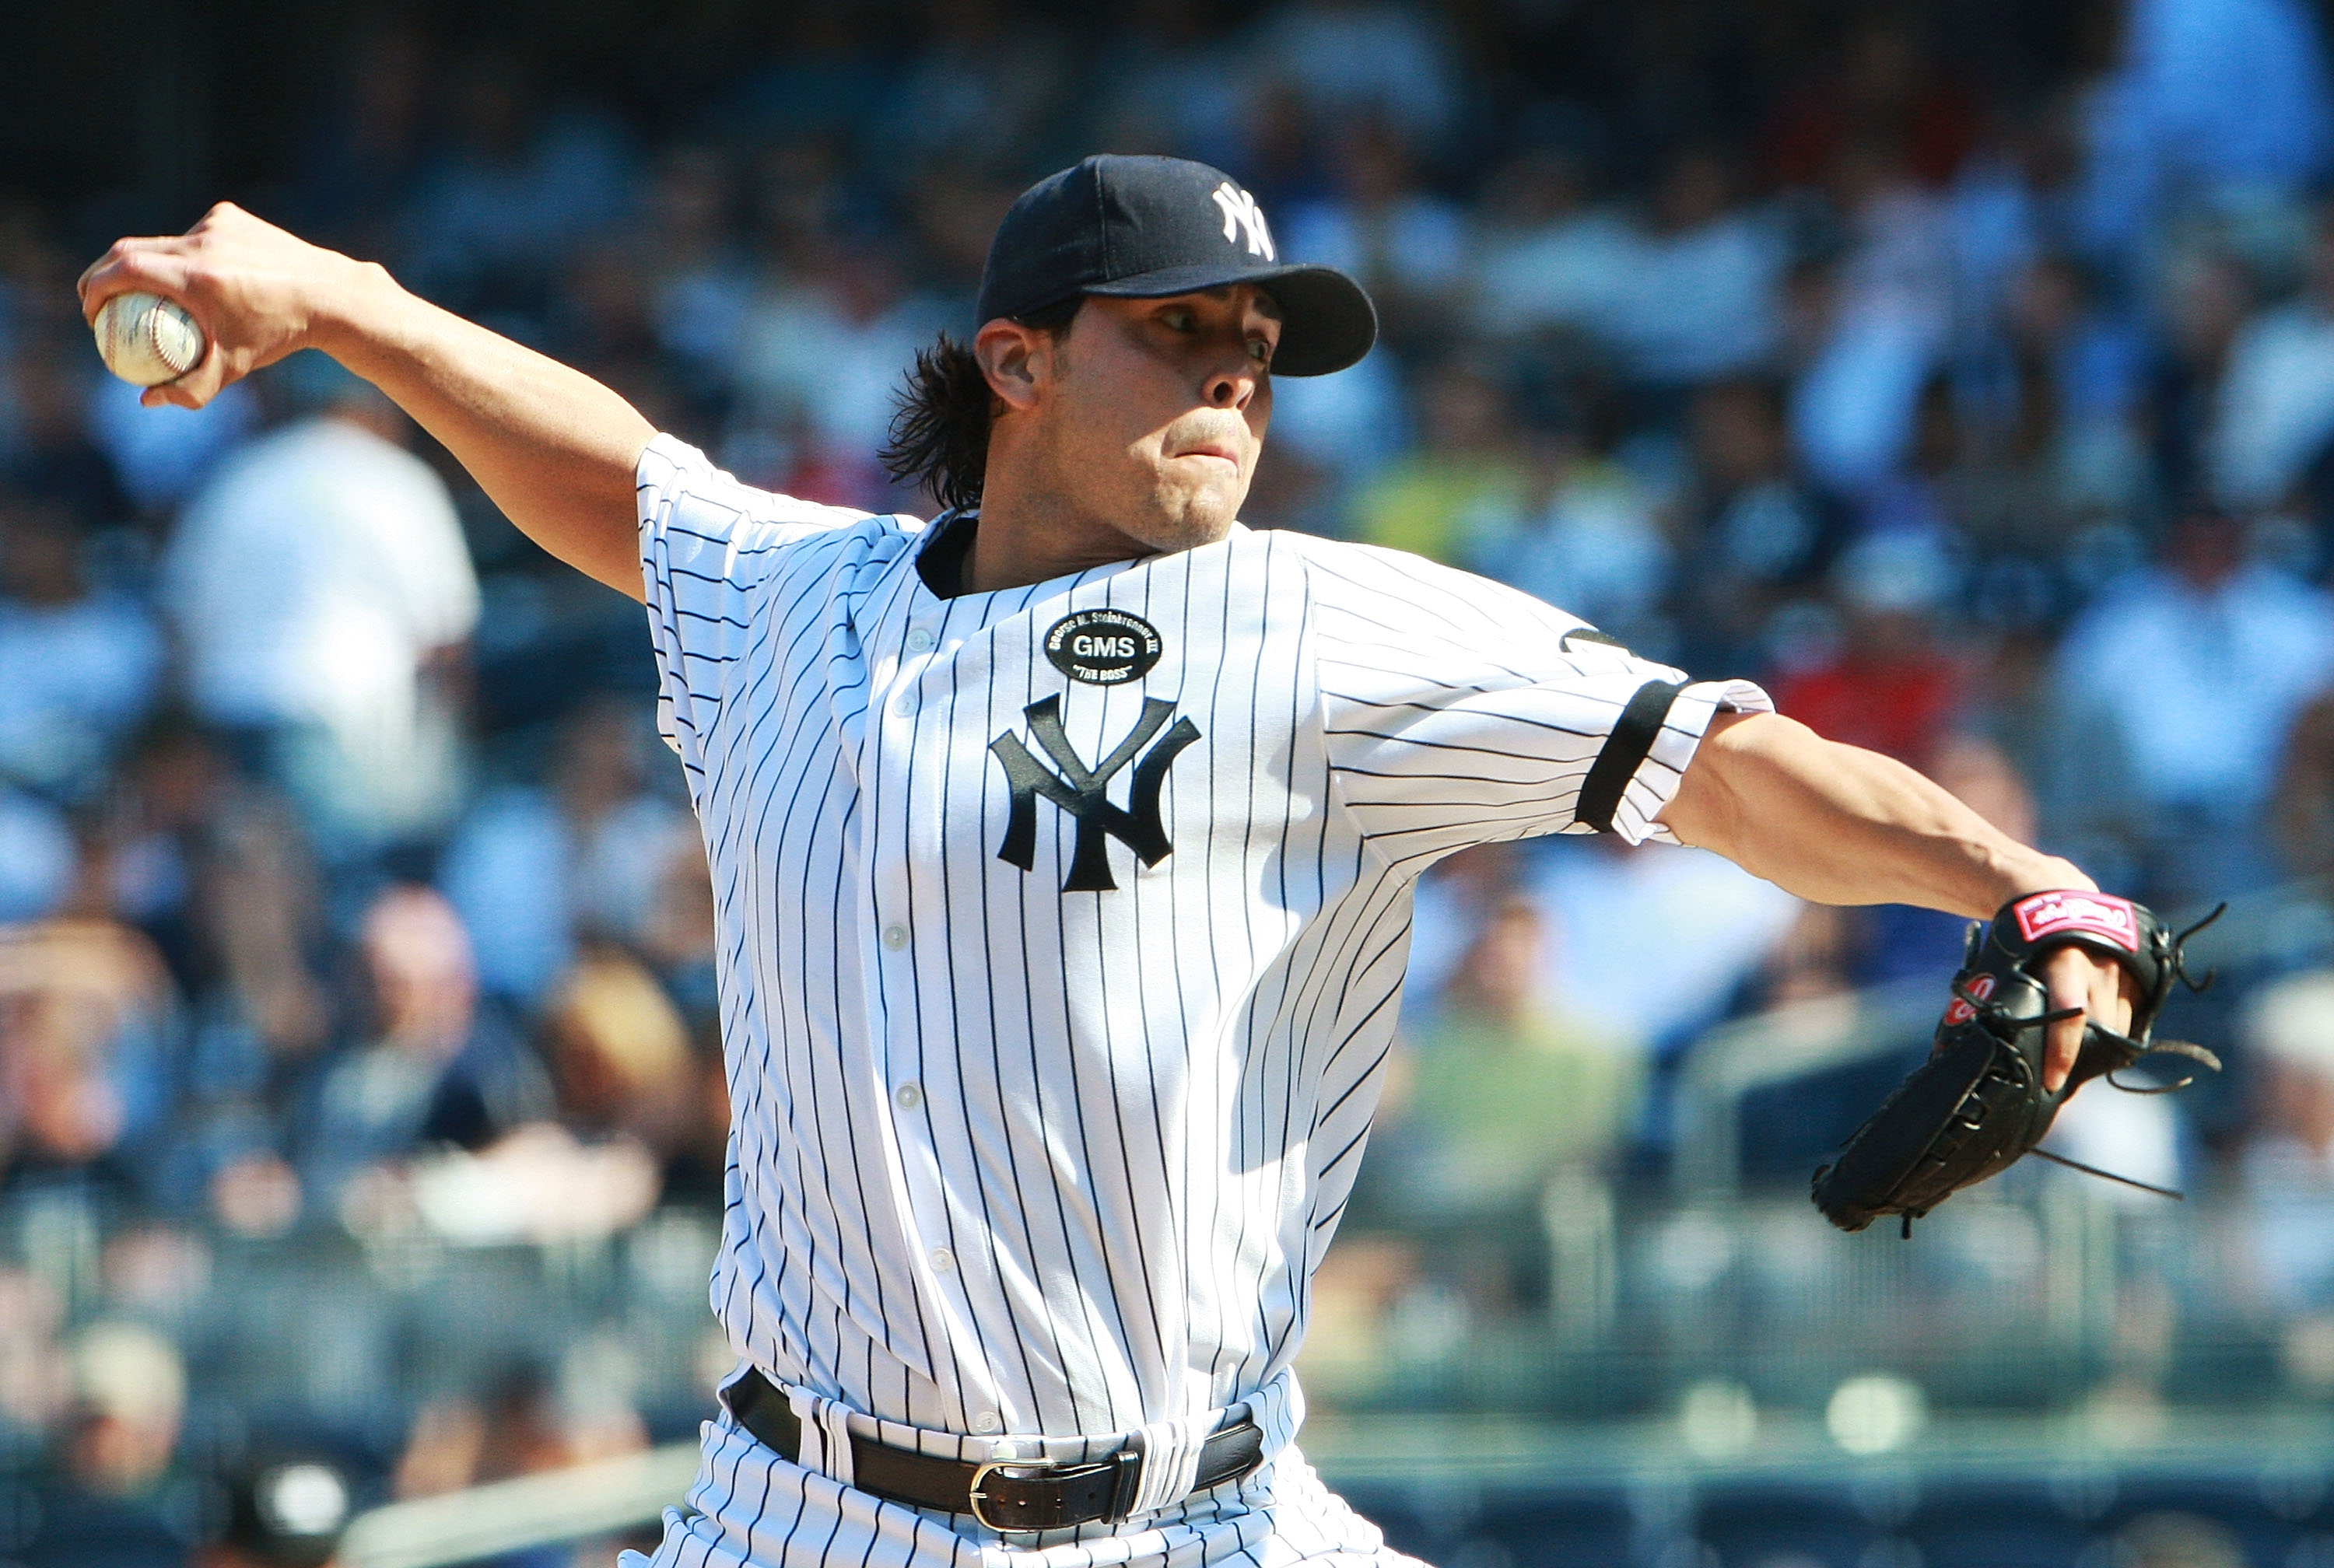 Former New York Yankees pitcher Sergio Mitre is under investigation in the disturbing case of a 2-year-old's rape and murder.